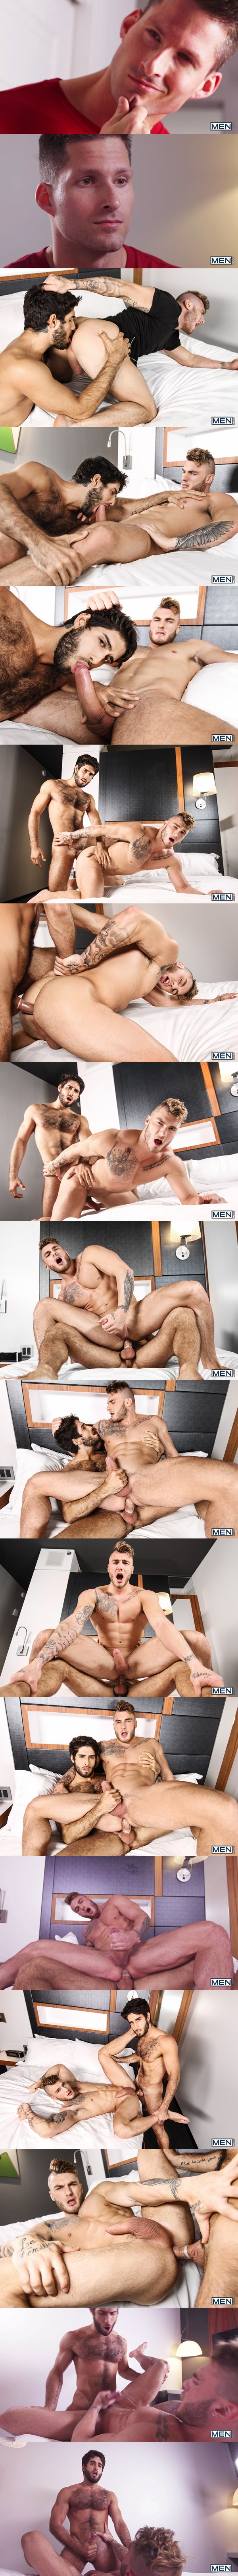 Diego Sans fucks the cum out of canadian beefcake William Seed in Cheaters Part 1 at Drillmyhole 02